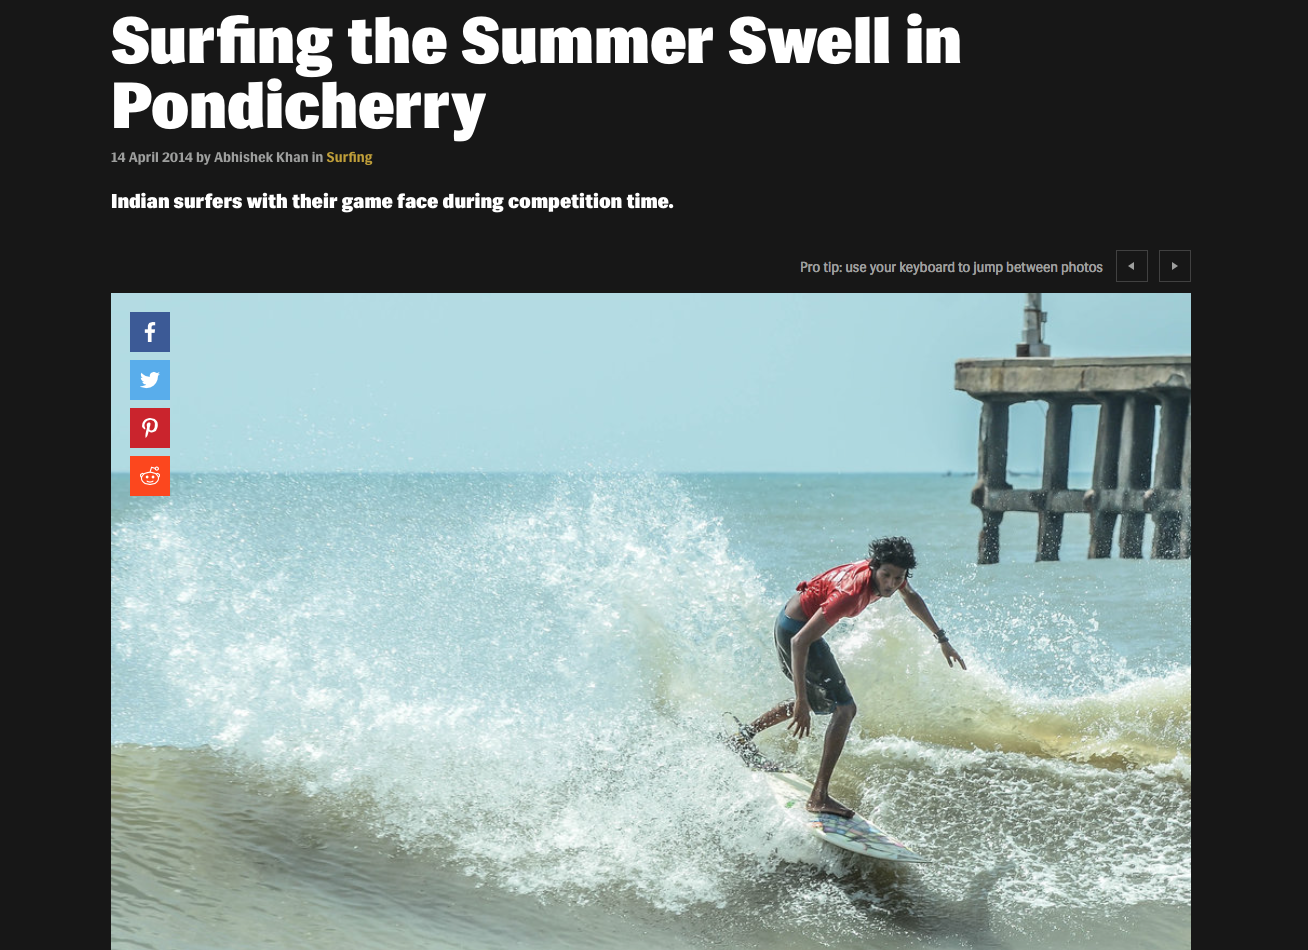 Surfing the Summer Swell